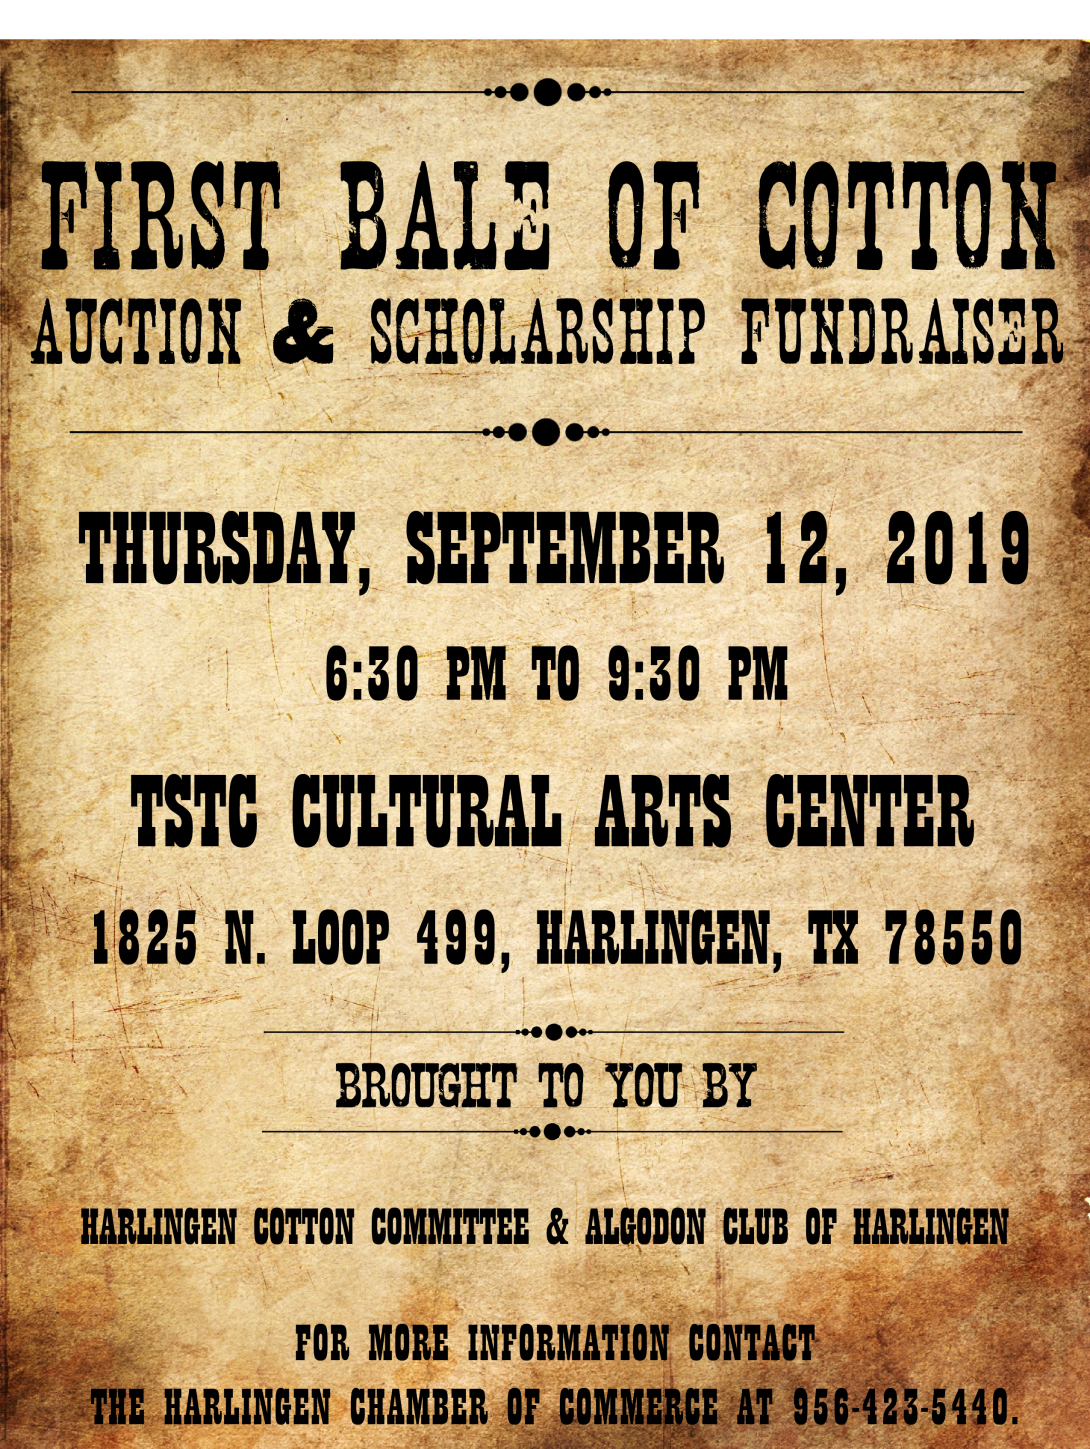 First Bale of Cotton Auction & Fundraiser